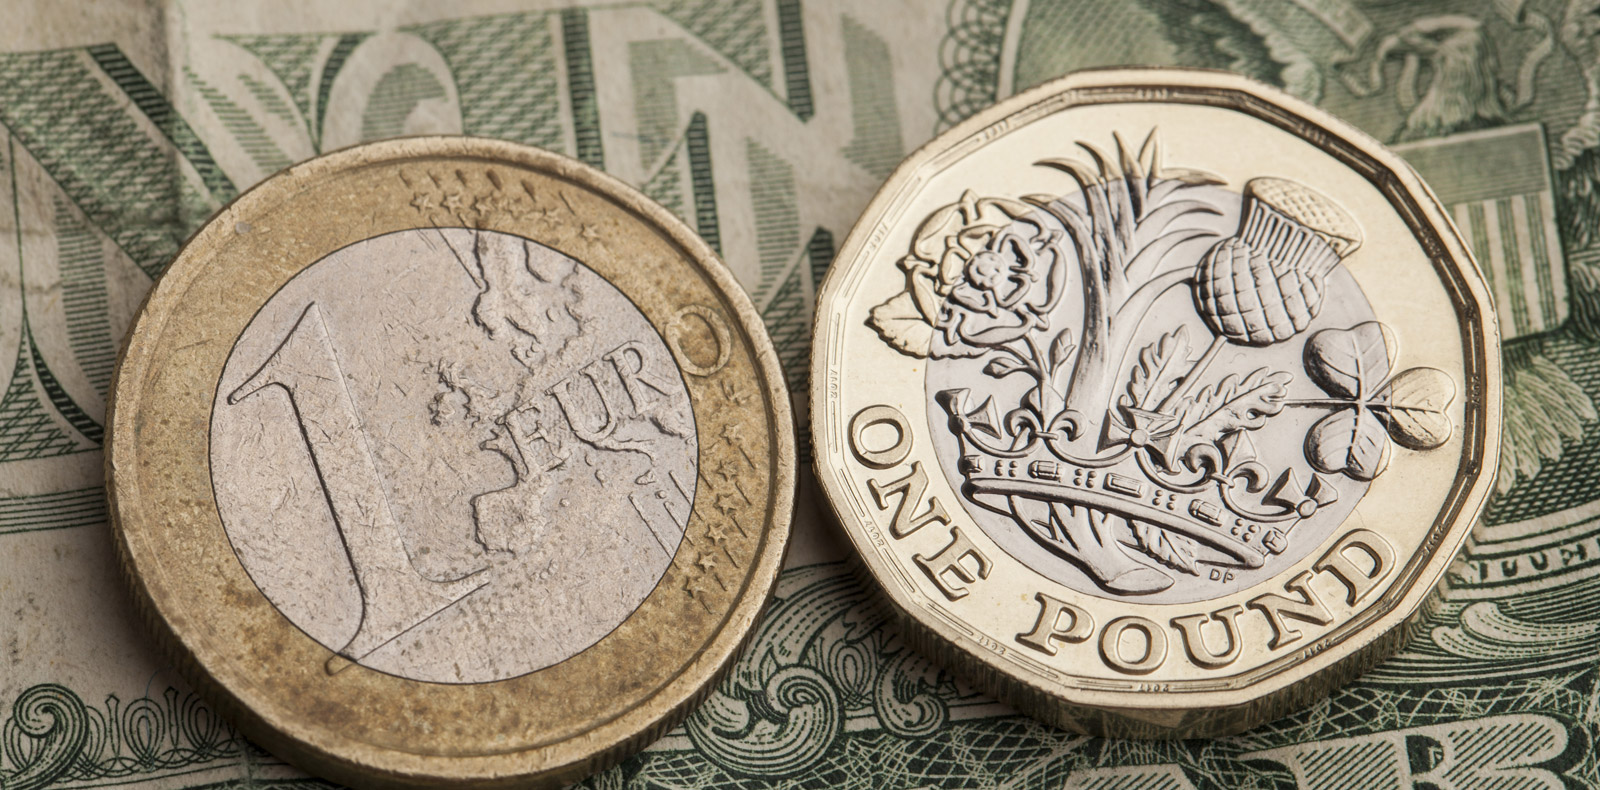 Sterling continues to remain rangebound against a variety of its currency counterparts such as the euro and US dollar as we near the end of March.